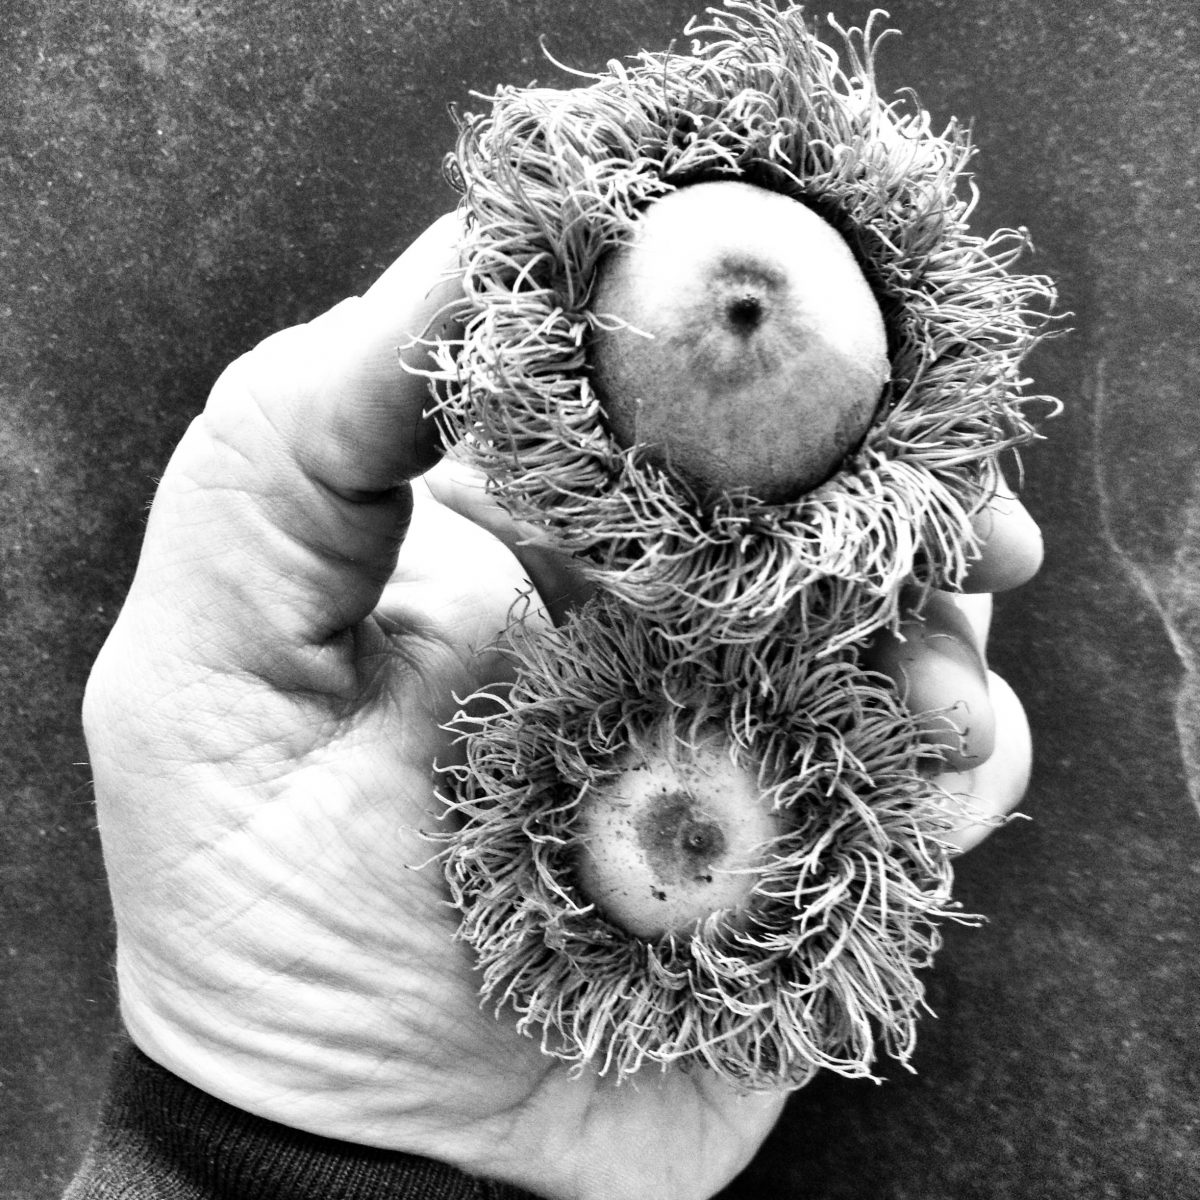 Instagram photo of yours truly holding two big, fuzzy acorns from a bur oak tree